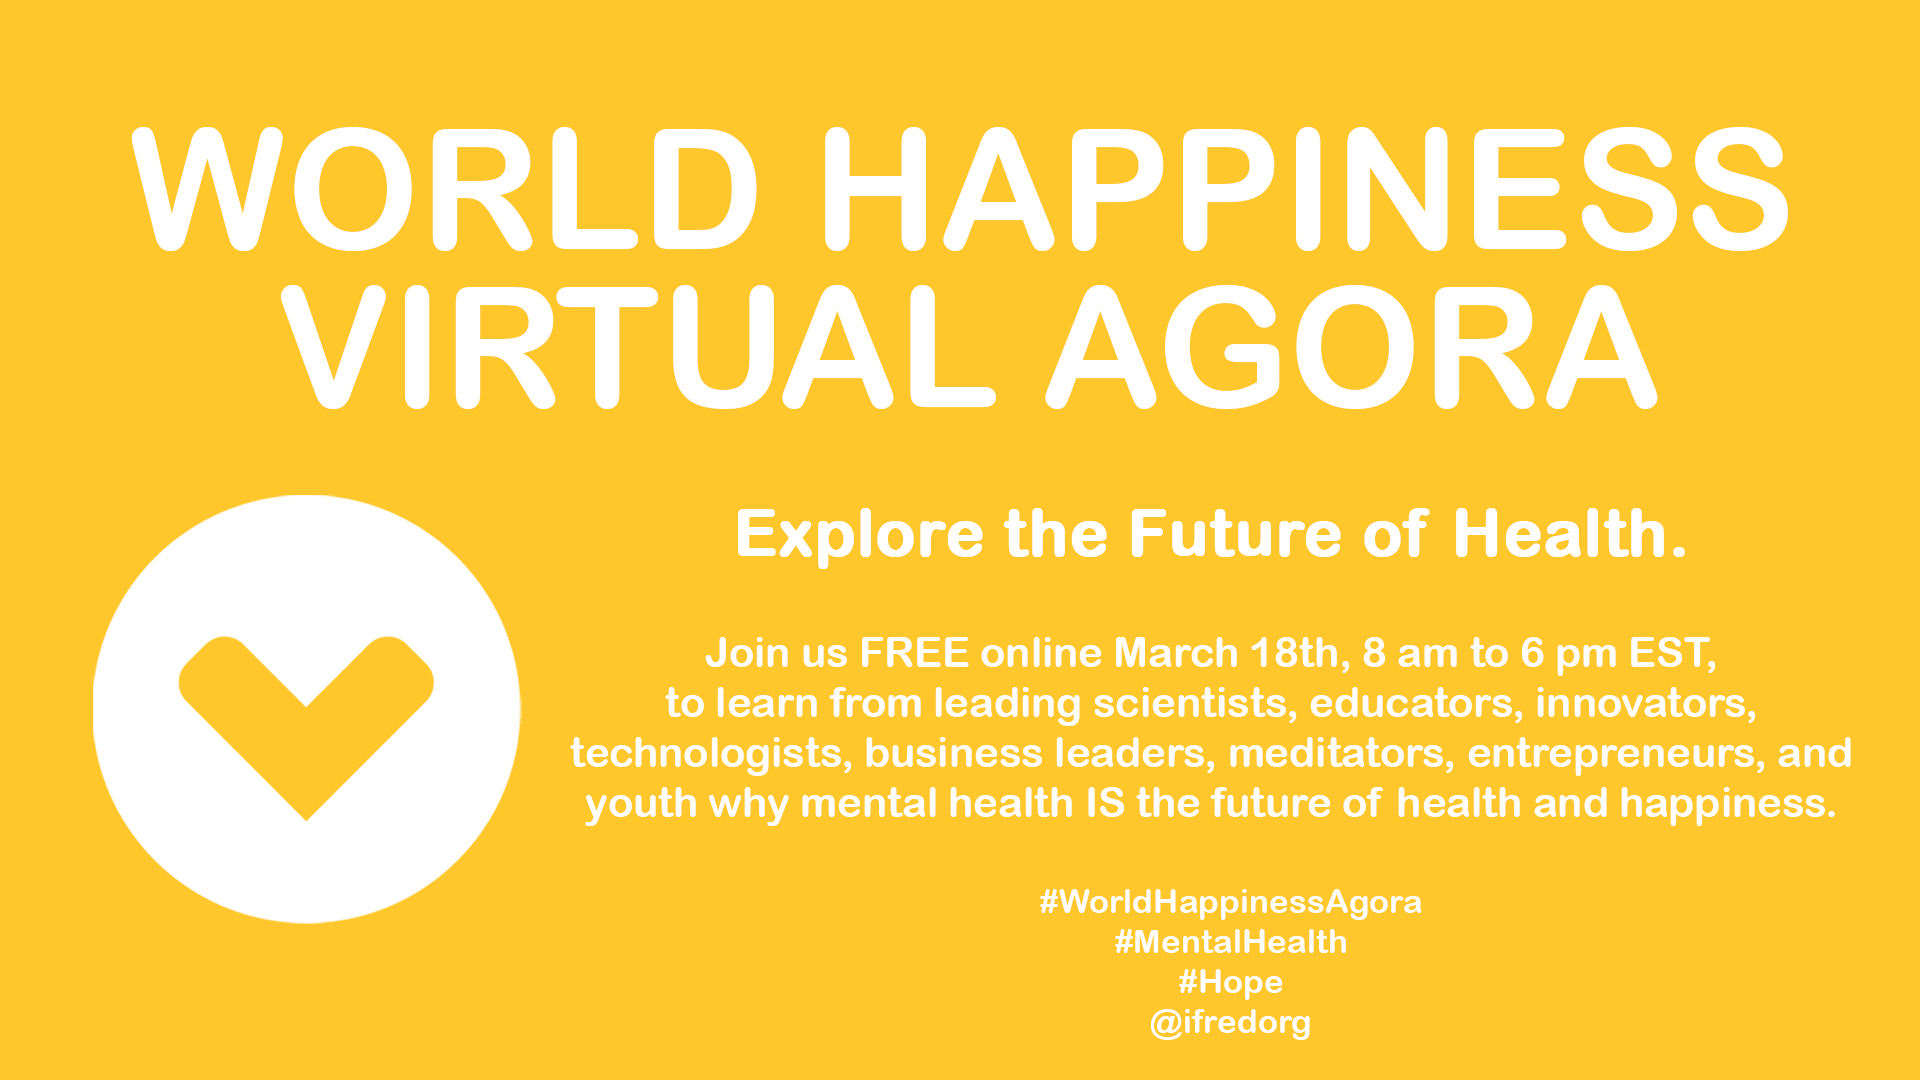 Join Global Mental Health Experts online Monday, March 18th